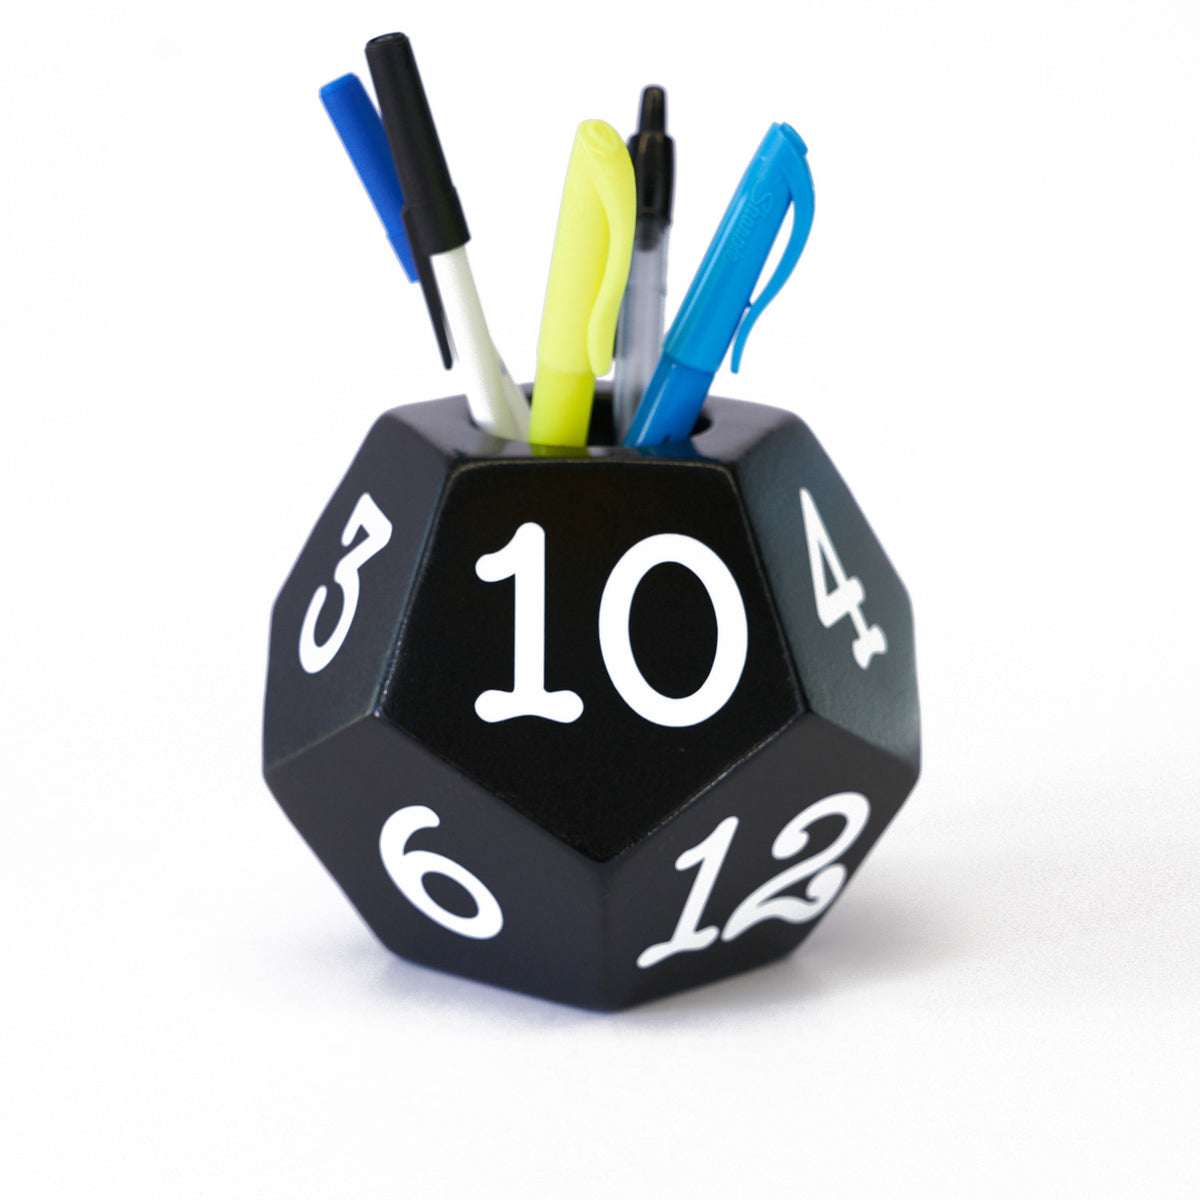 Geek novelty items designed to help you show off you geek side. Pictured is a 12 sided dice pencil holder in black with while letters created by Uniquely Geek a custom gaming table manufacturer